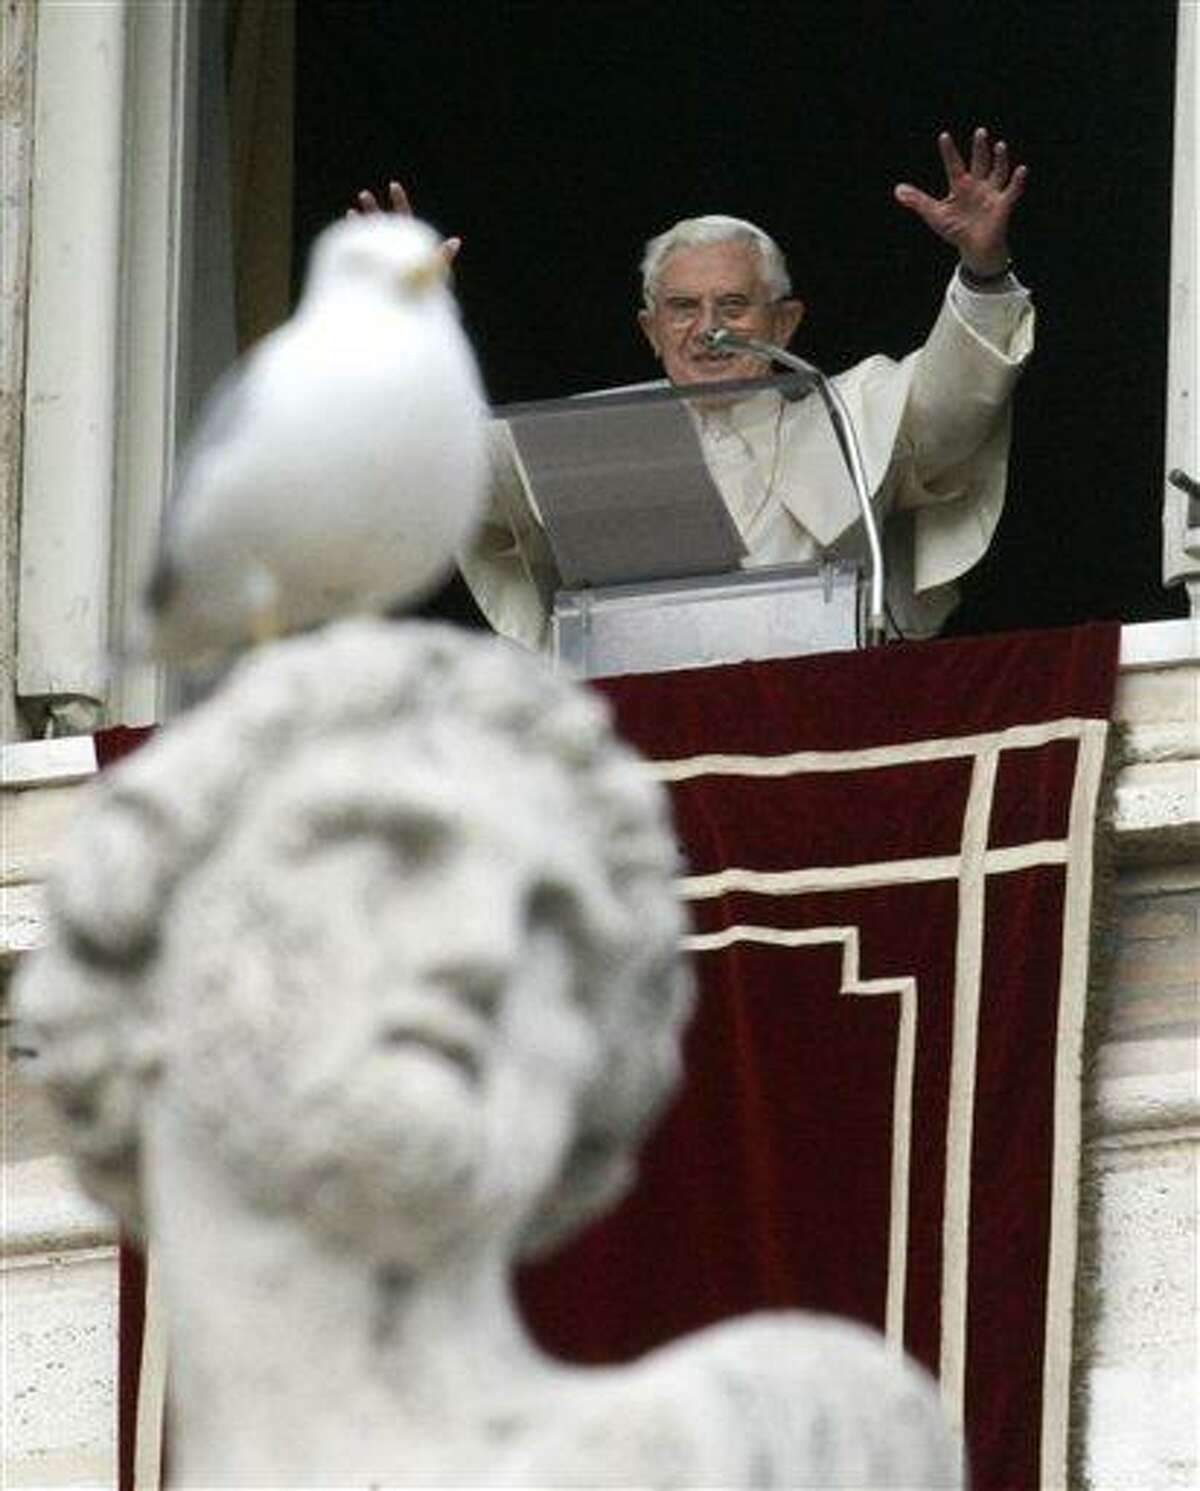 Pope Benedict XVI greets faithful during the Angelus prayer from his studio overlooking St. Peter's Square, Vatican, in this 2011 file photo. (AP Photo/Riccardo De Luca)